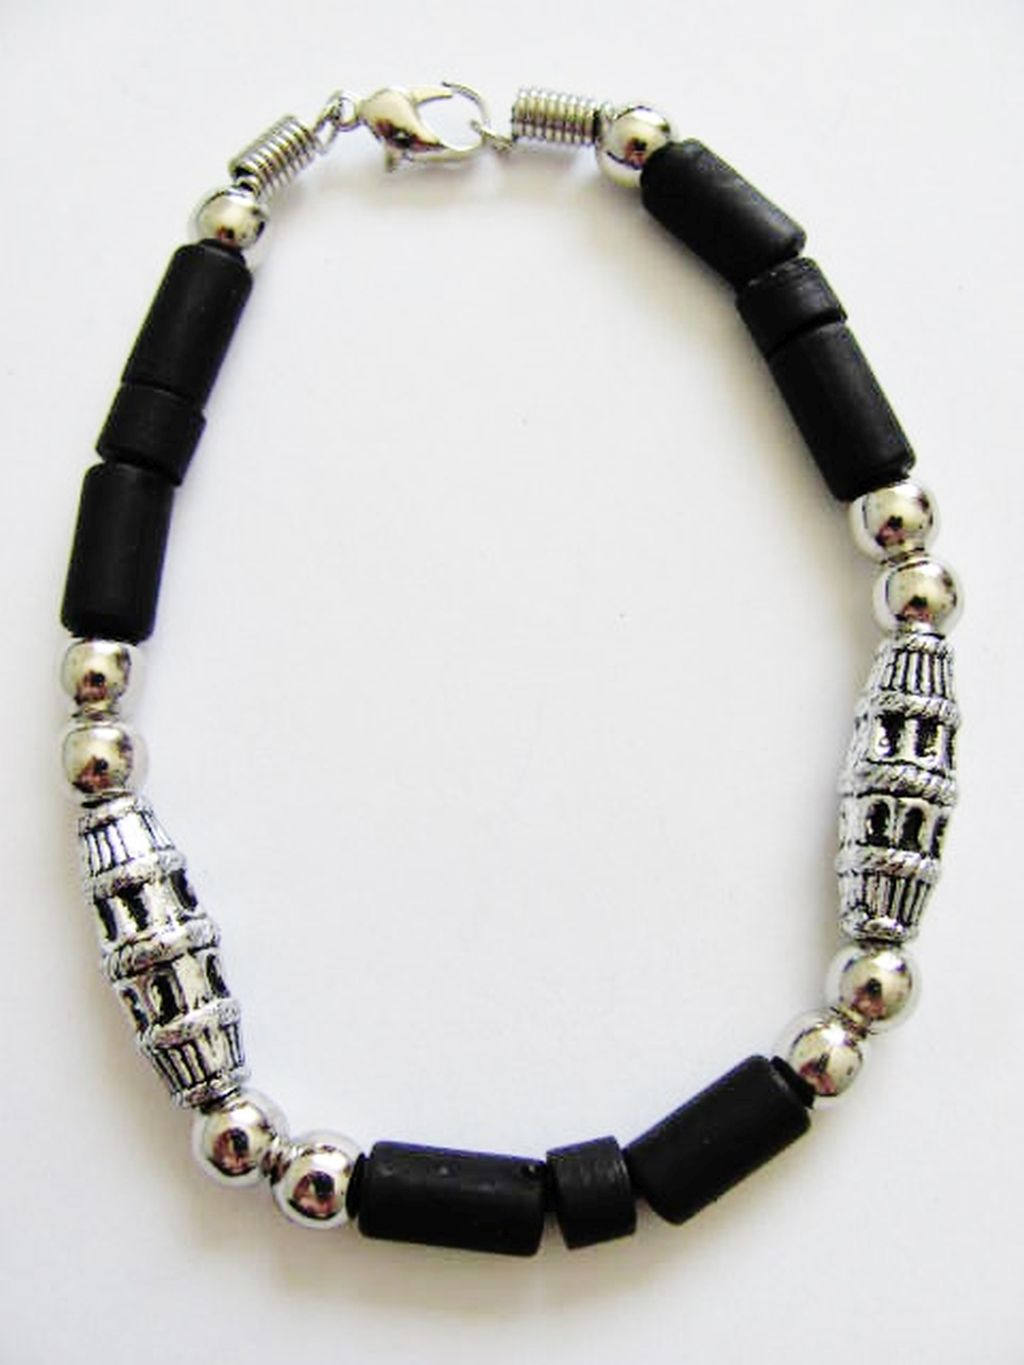 Cancun Hot Chrome/Extreme Black Men's Bead Bracelet, Surfer Style